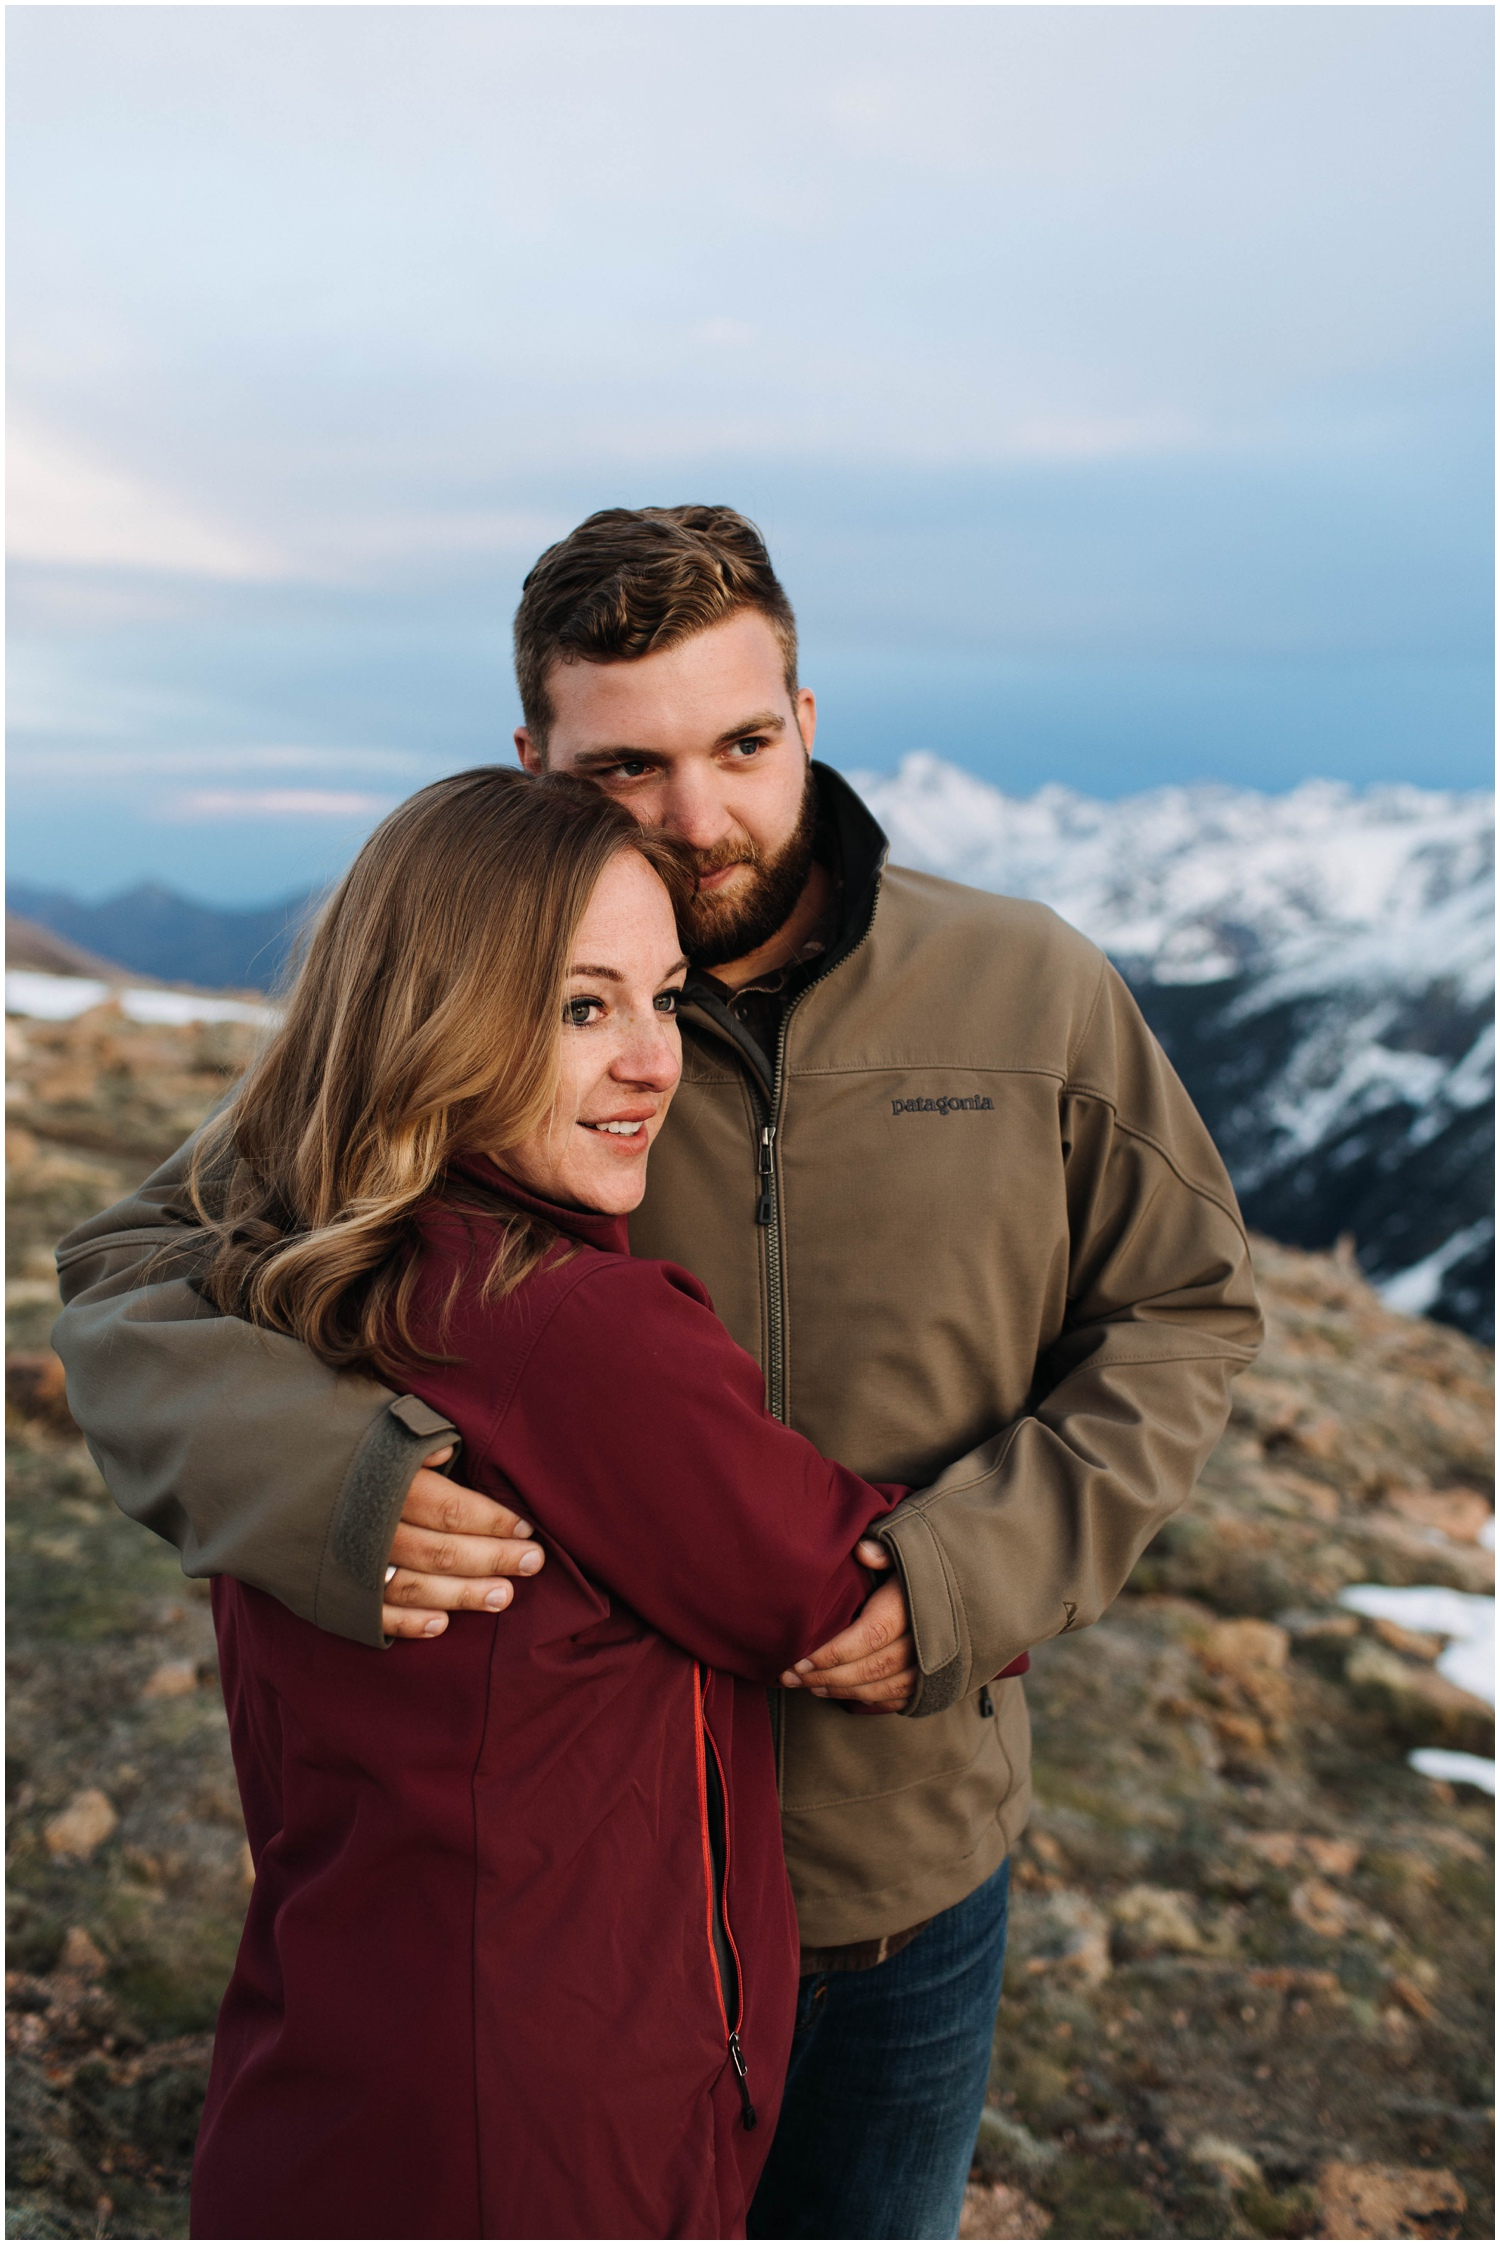 taylor_powers_best_of_2017_highlights_adventure_couple_photography_0123.jpg